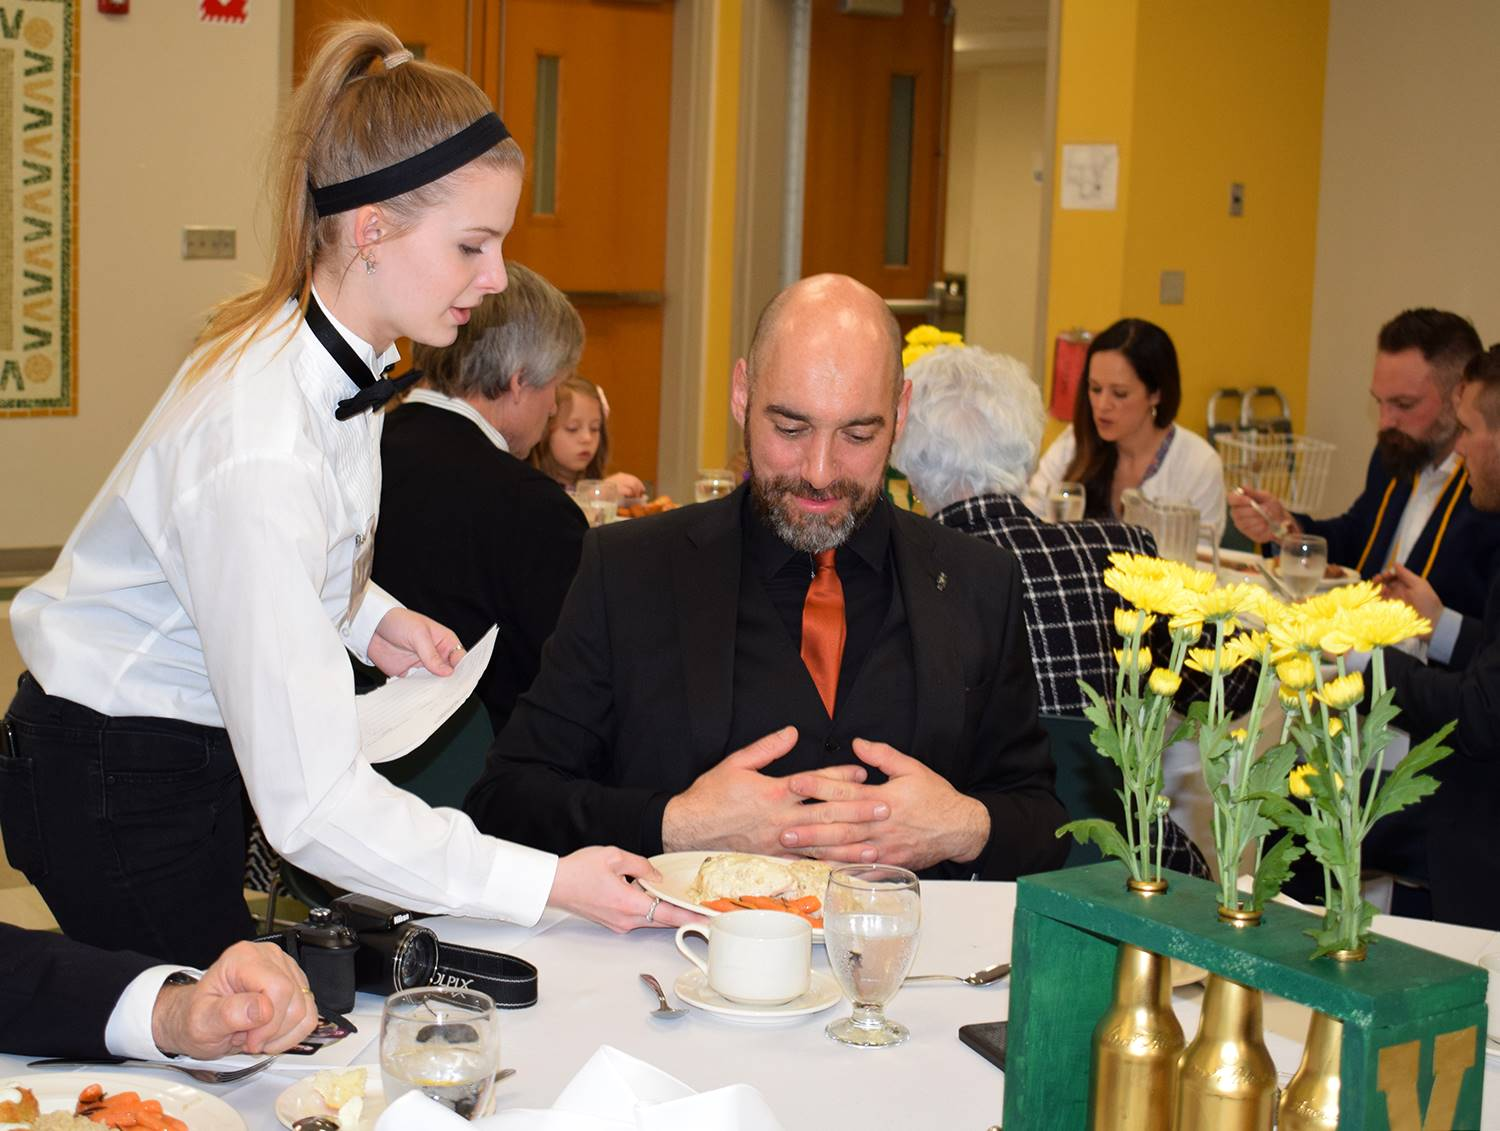 A student waitress serves Mr. Hadsell his dinner entree.